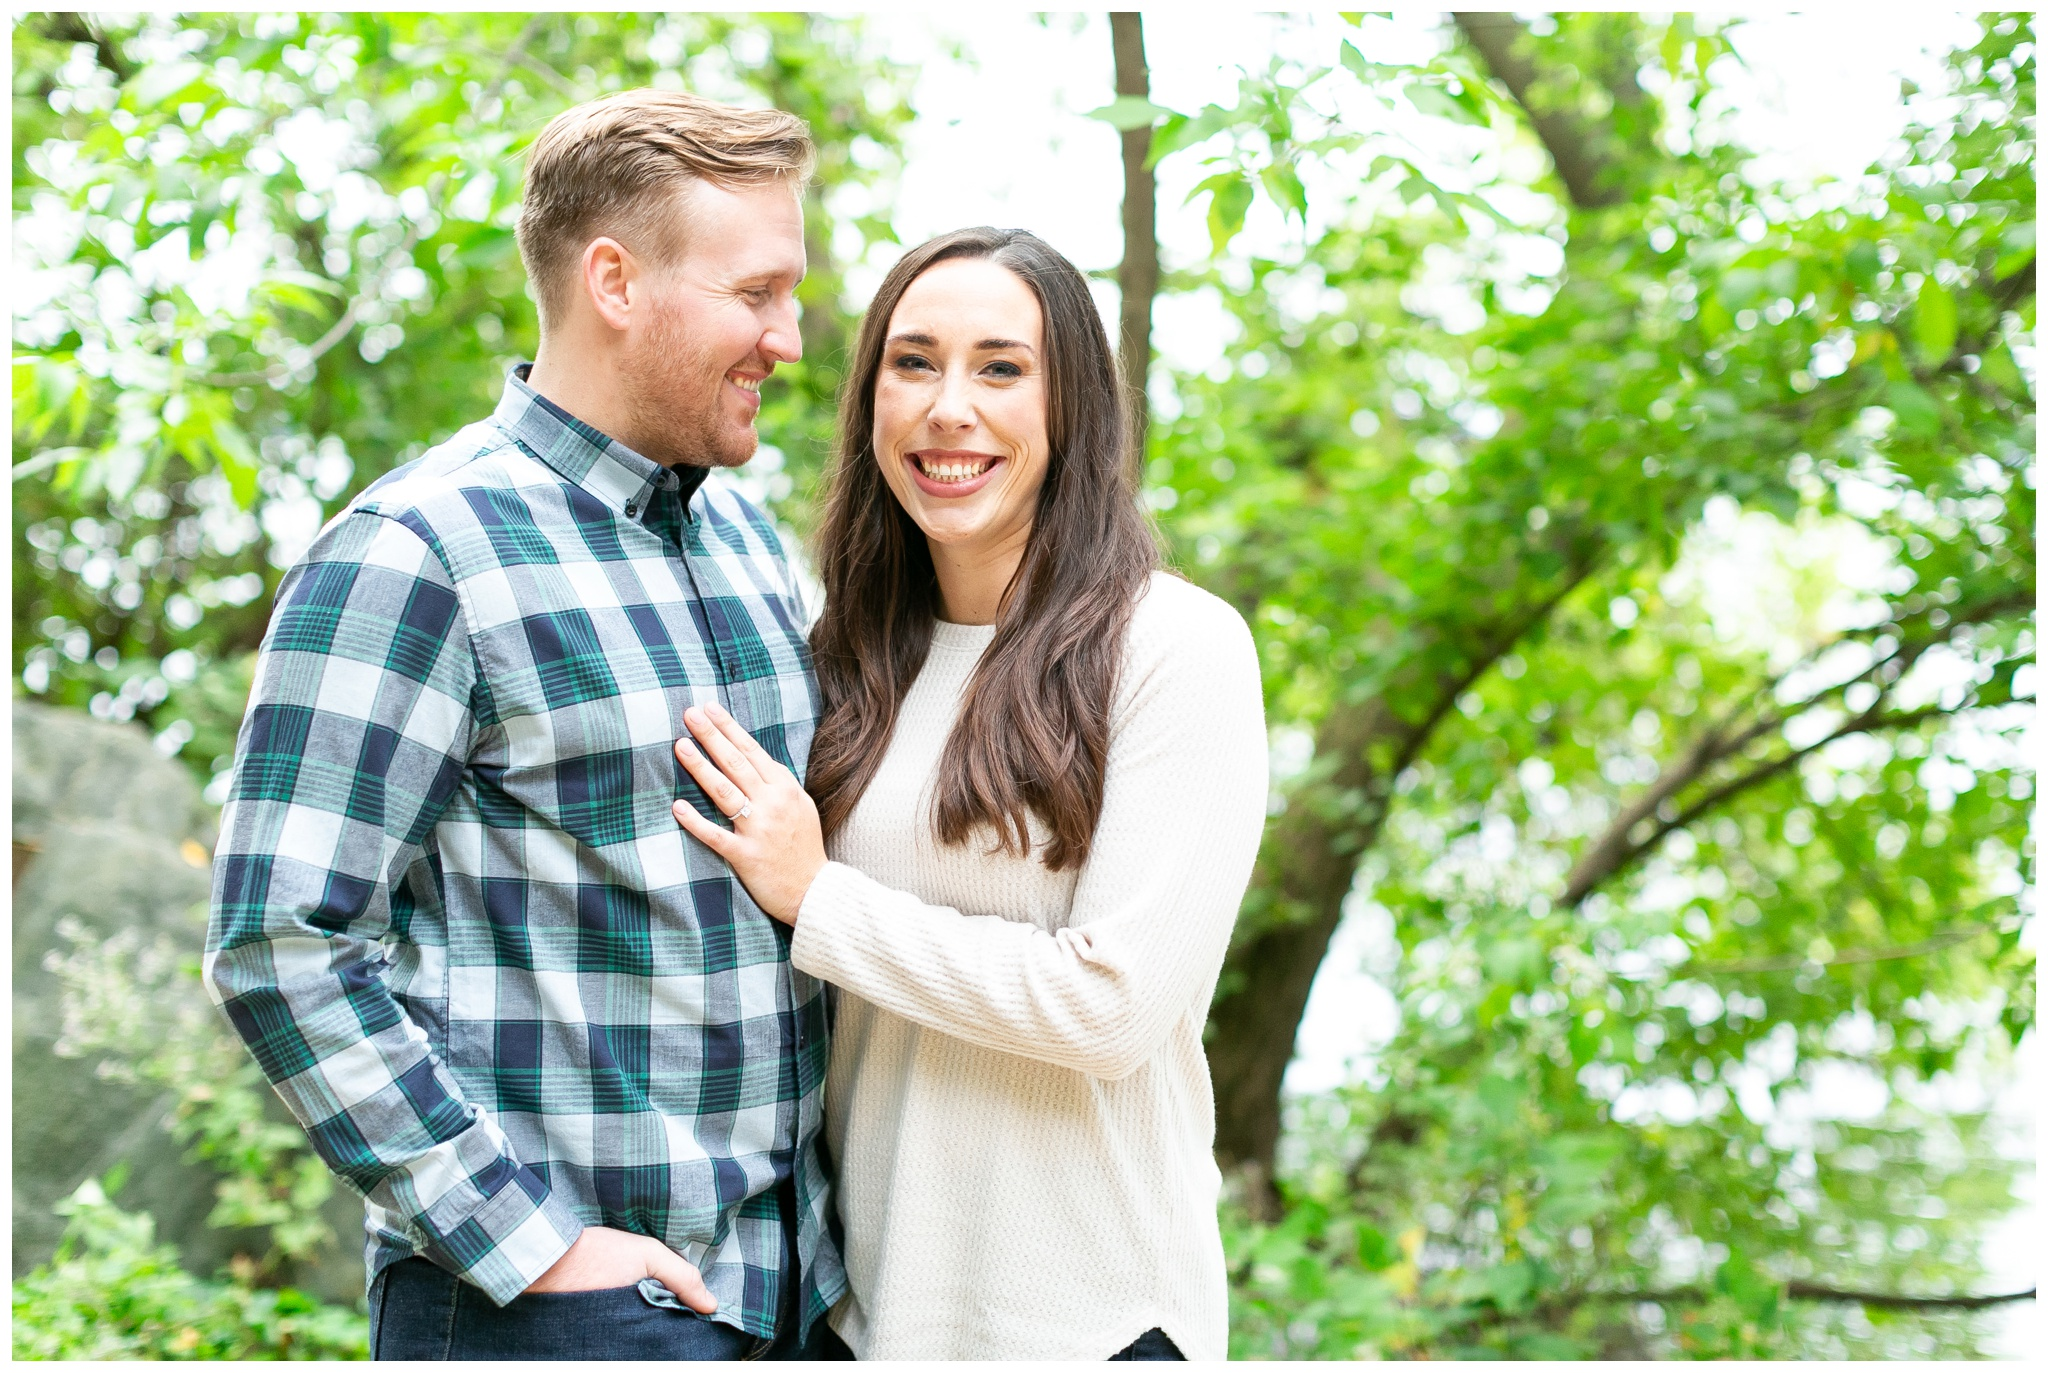 memorial_union_engagement_session_madison_wisconsin_1641.jpg